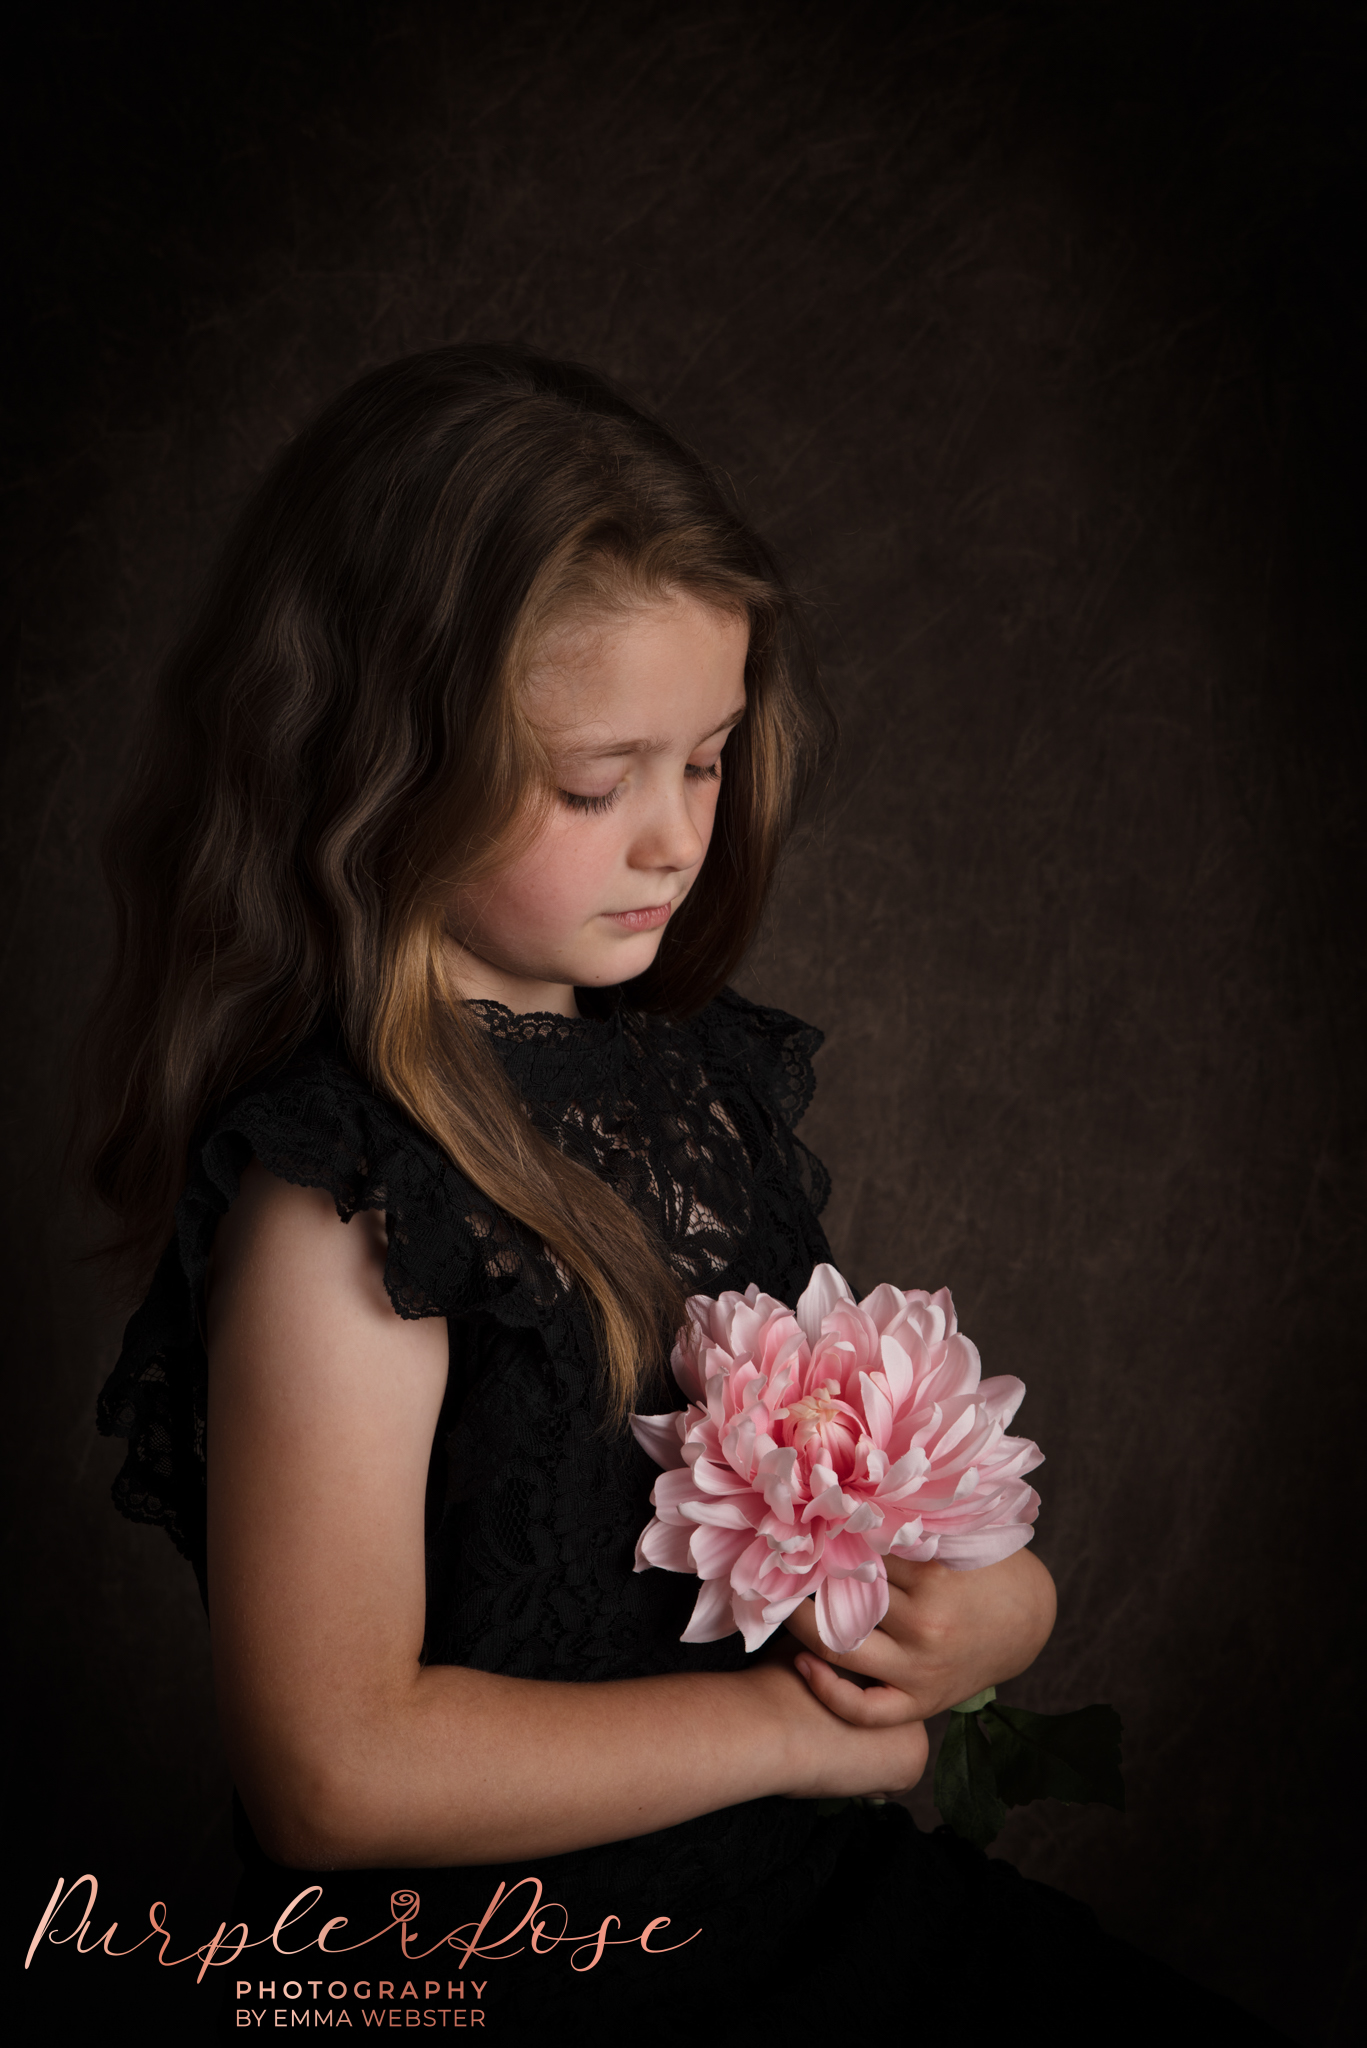 Child looking at a flower